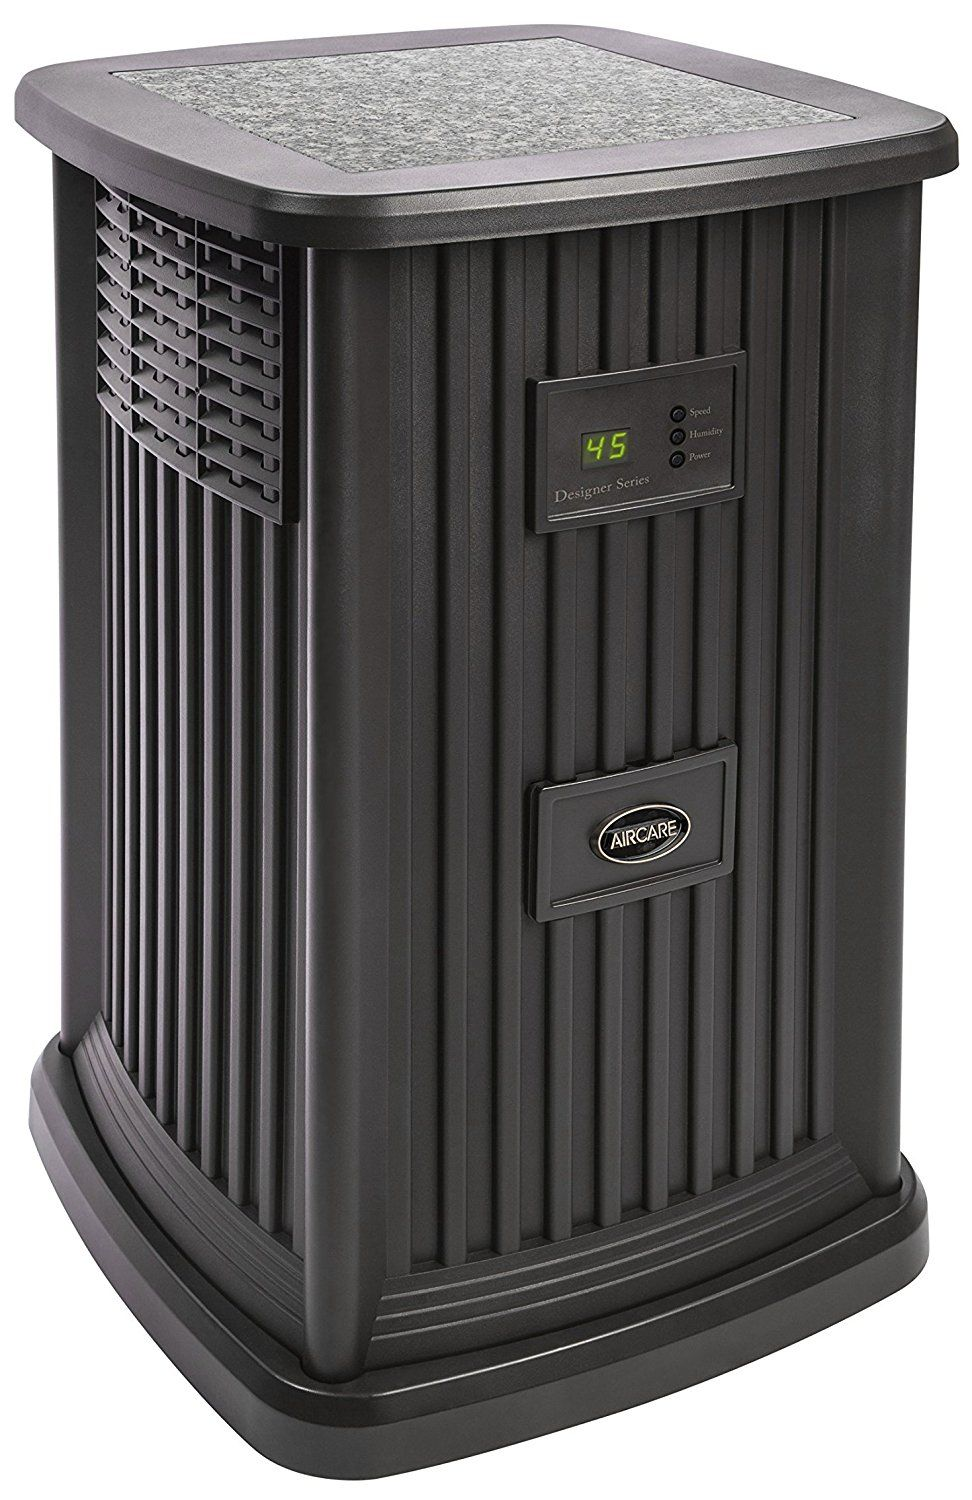 Aircare EP9 800 Review, WholeHouse Humidifier House